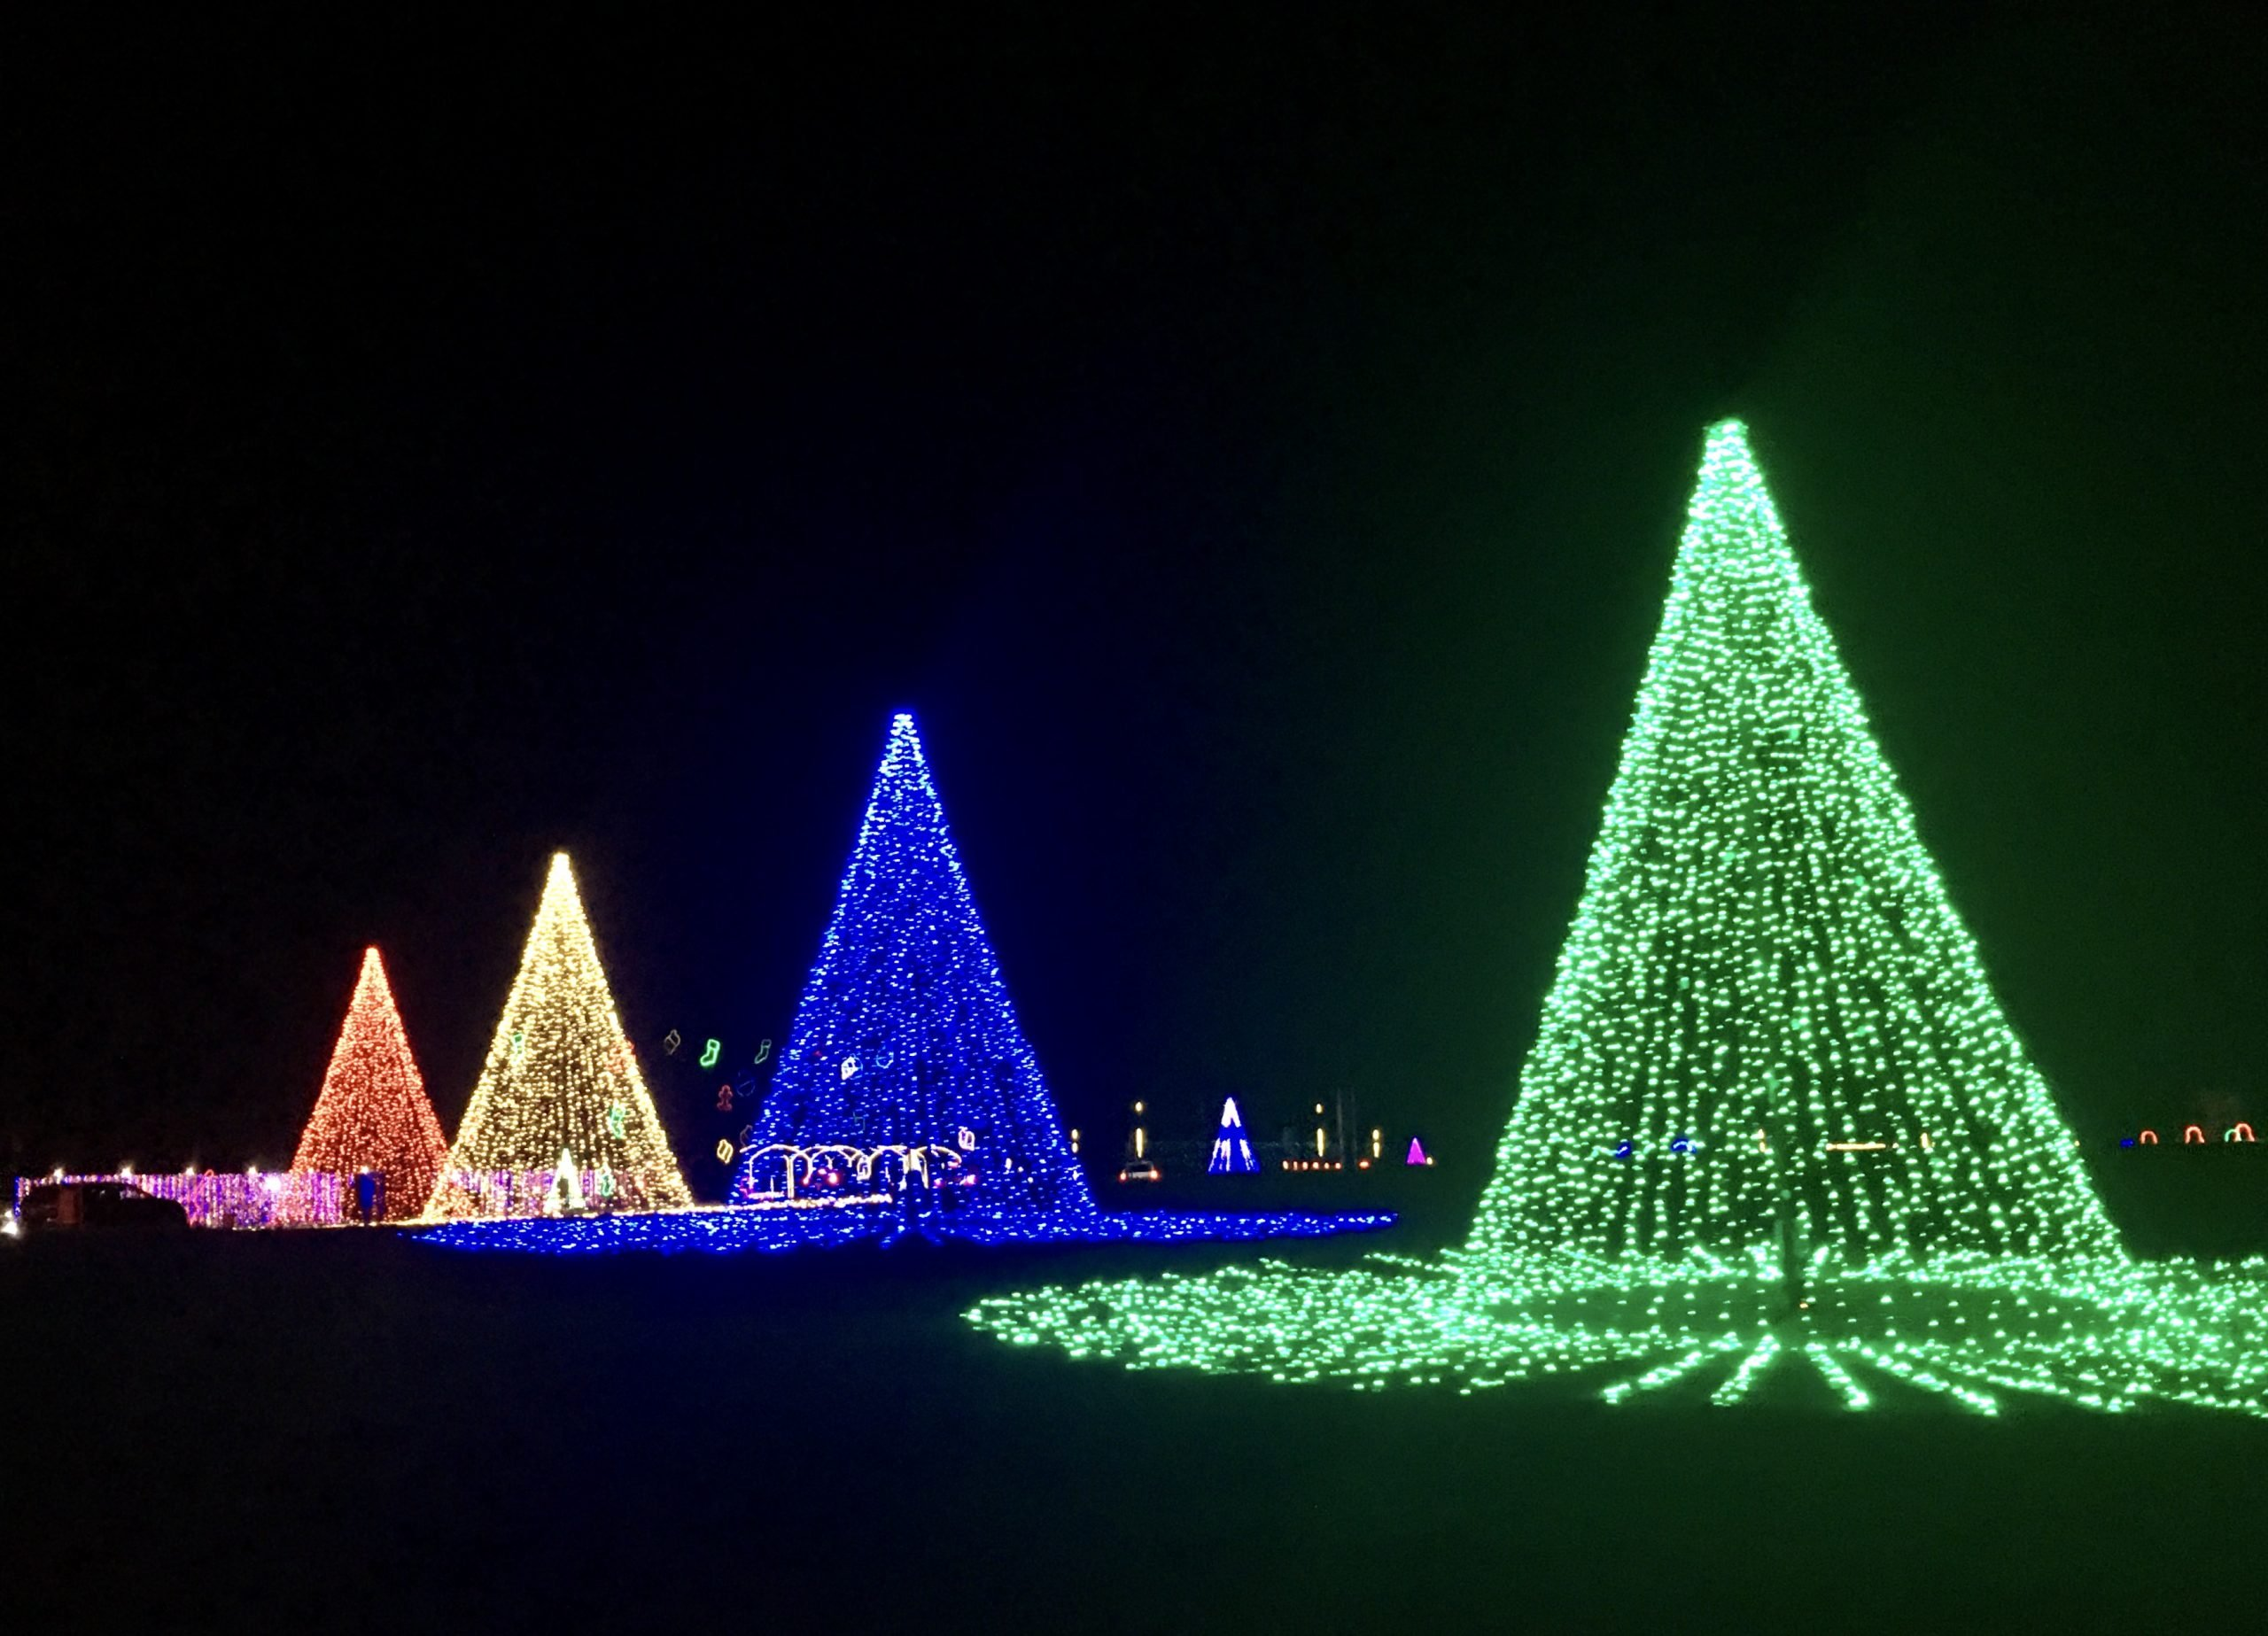 Dancing Lights of Christmas 2020 photo